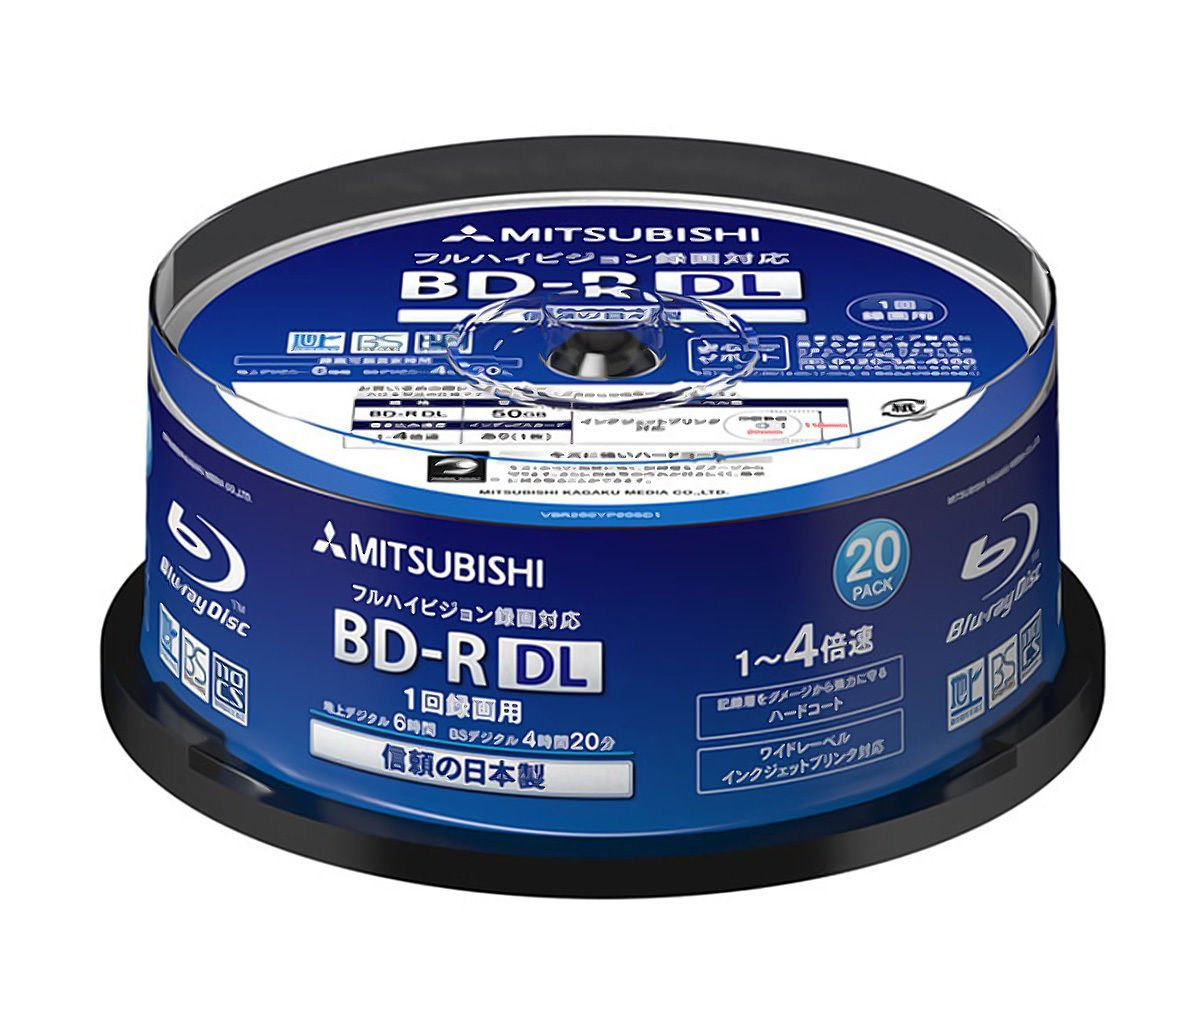 Verbatim Blu-ray Disc 20 pcs Spindle - 50GB 4X Speed BD-R DL - Inkjet Printable - Made in Japan VBR260YP20SD1